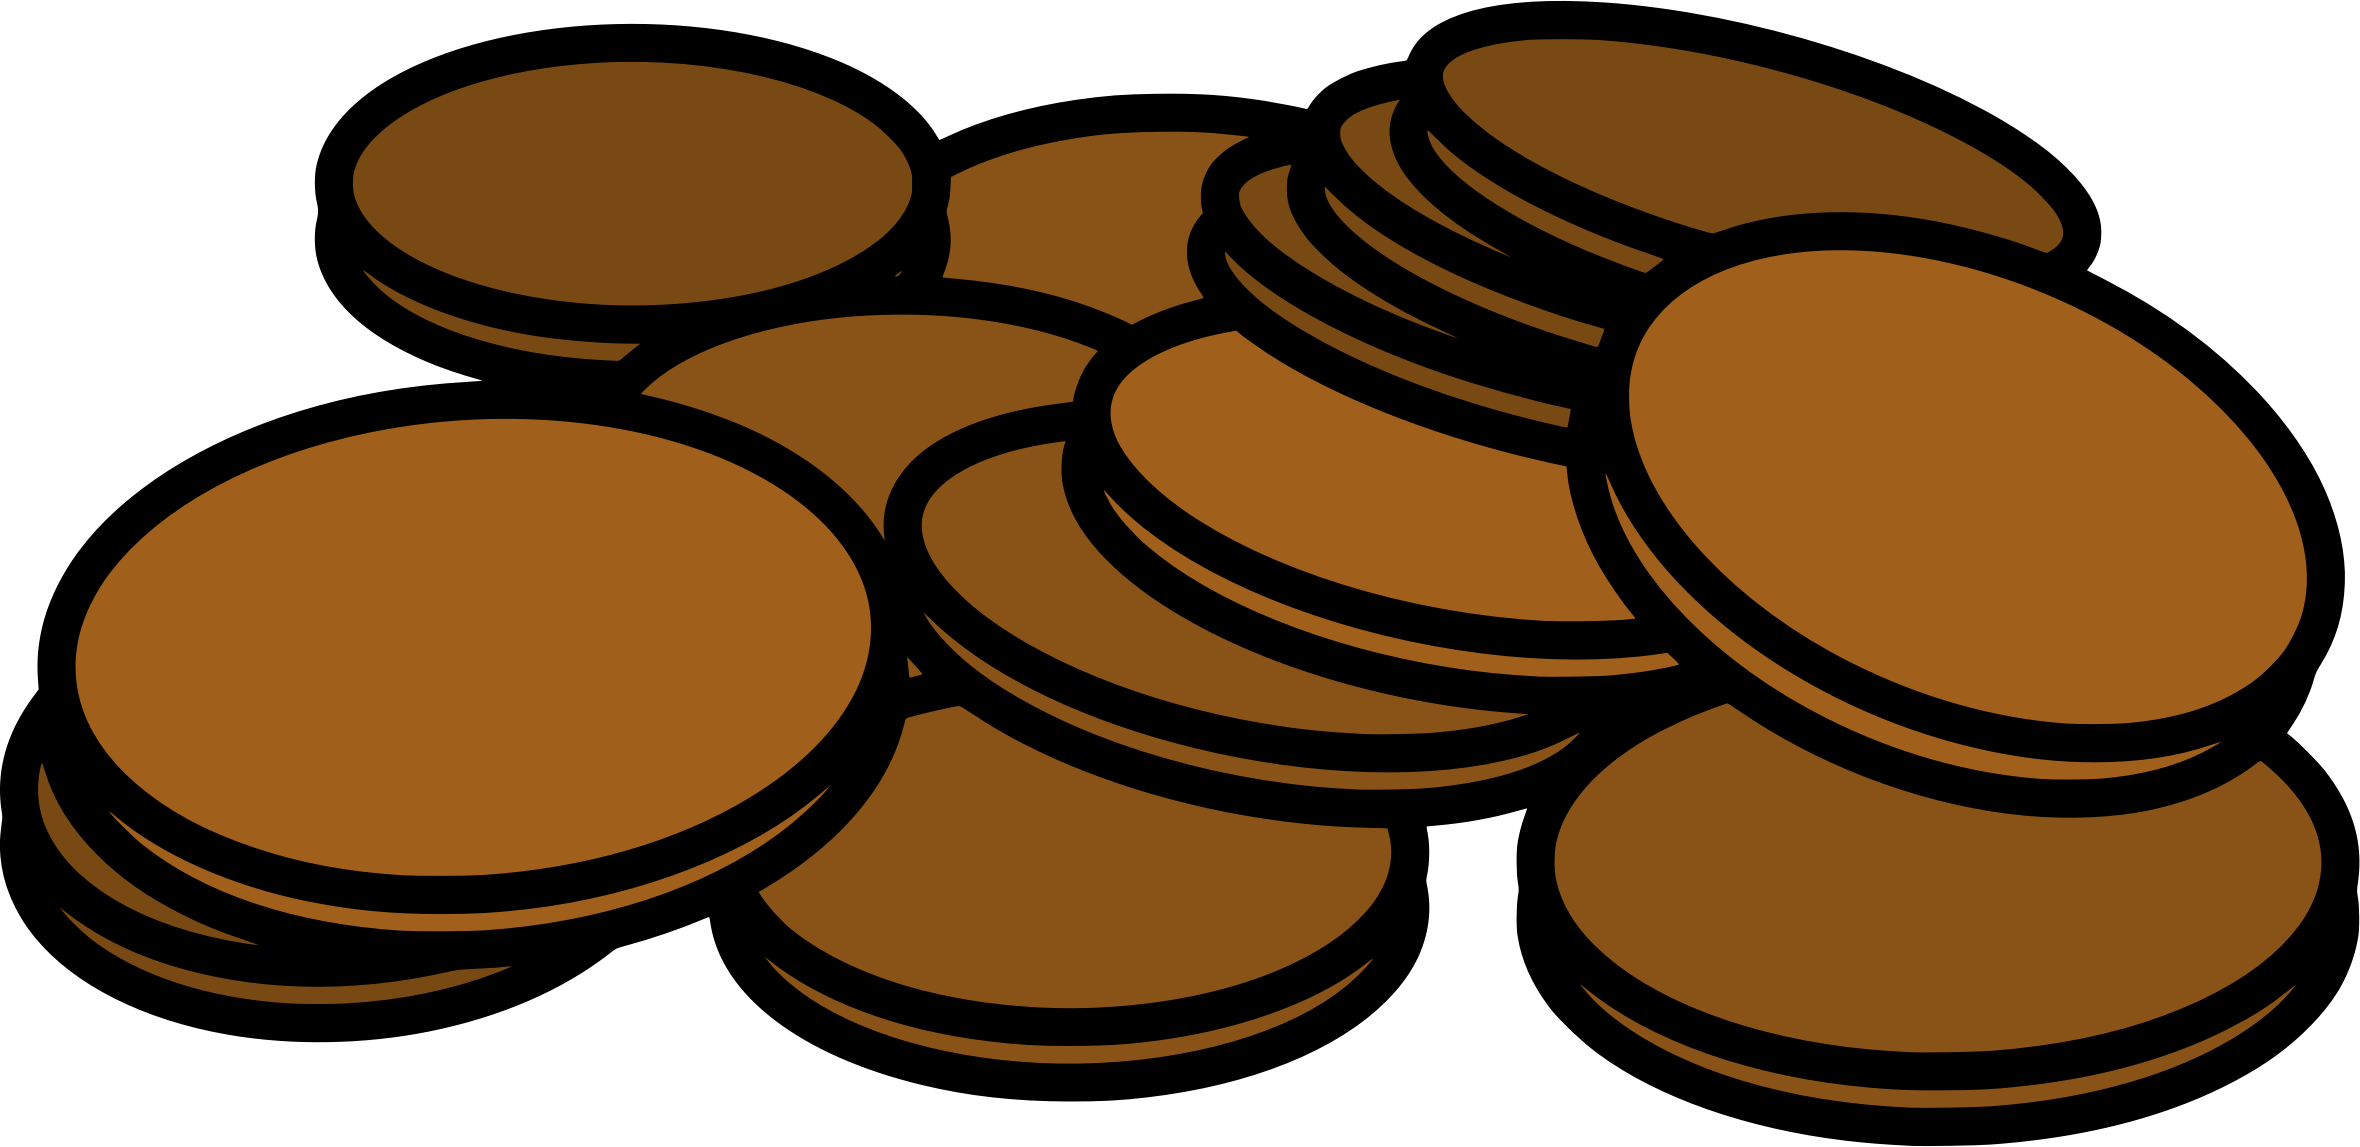 Coin clipart lucky penny. Pennies big image png